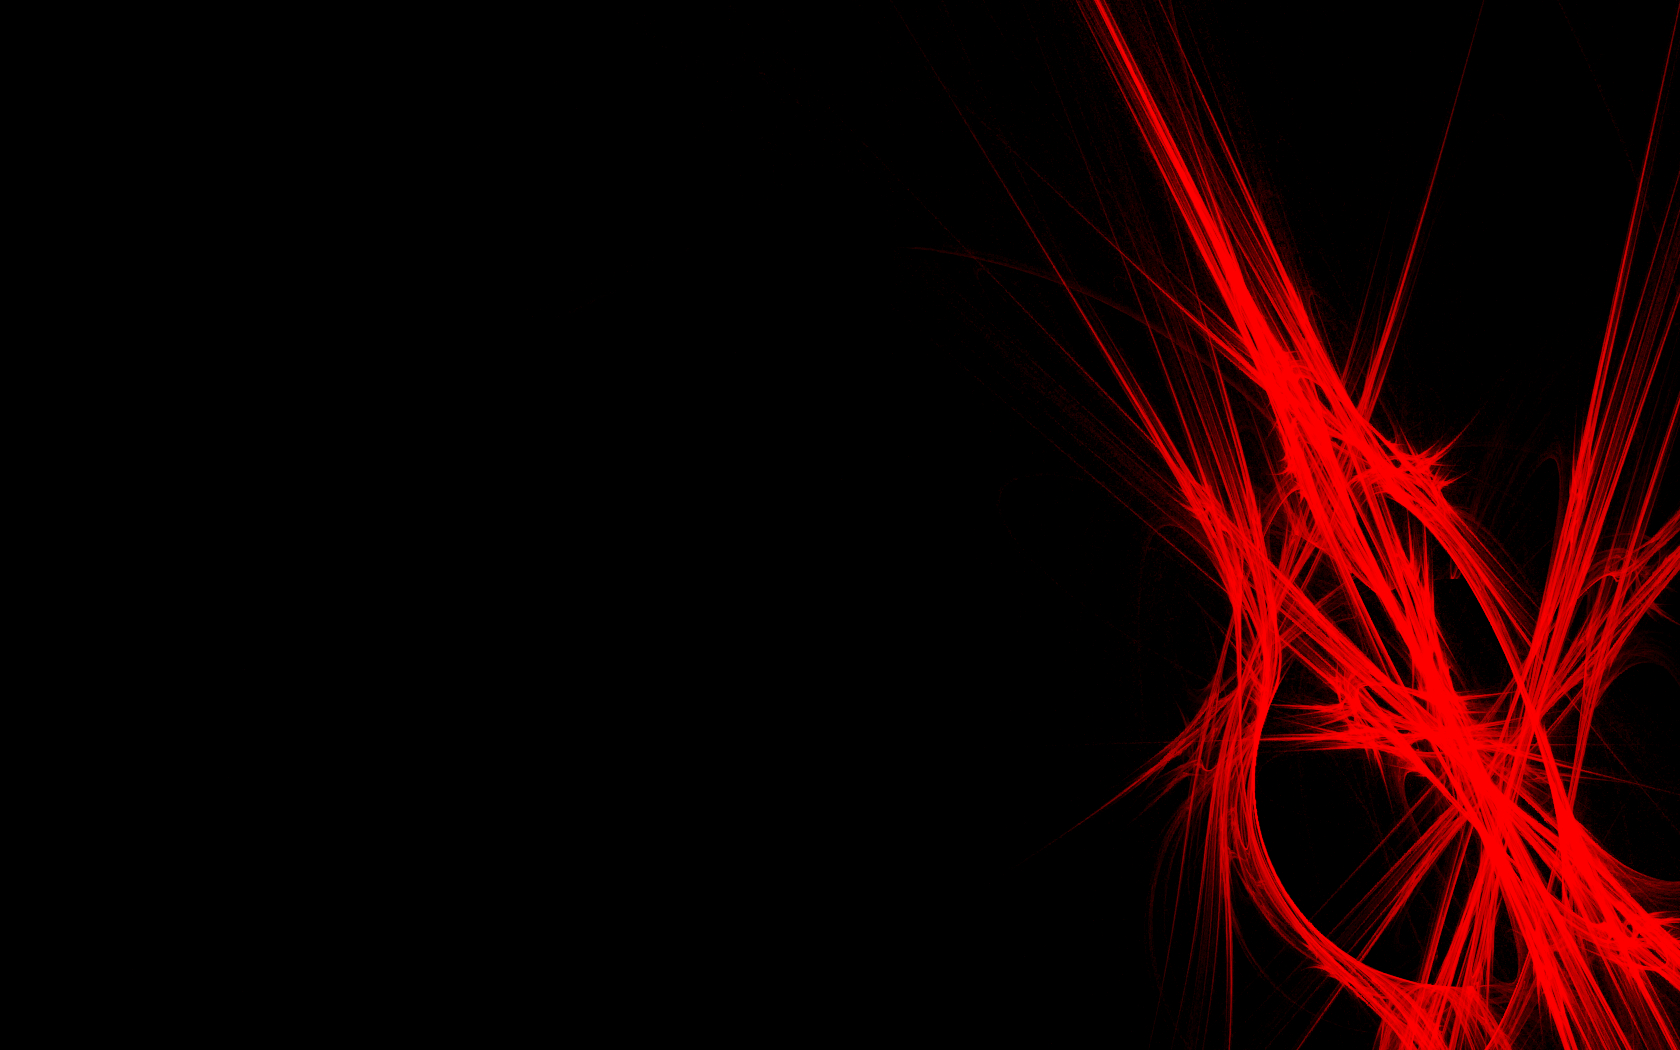 Amazing Graphic Design Background | Red and Black BackgroundHD